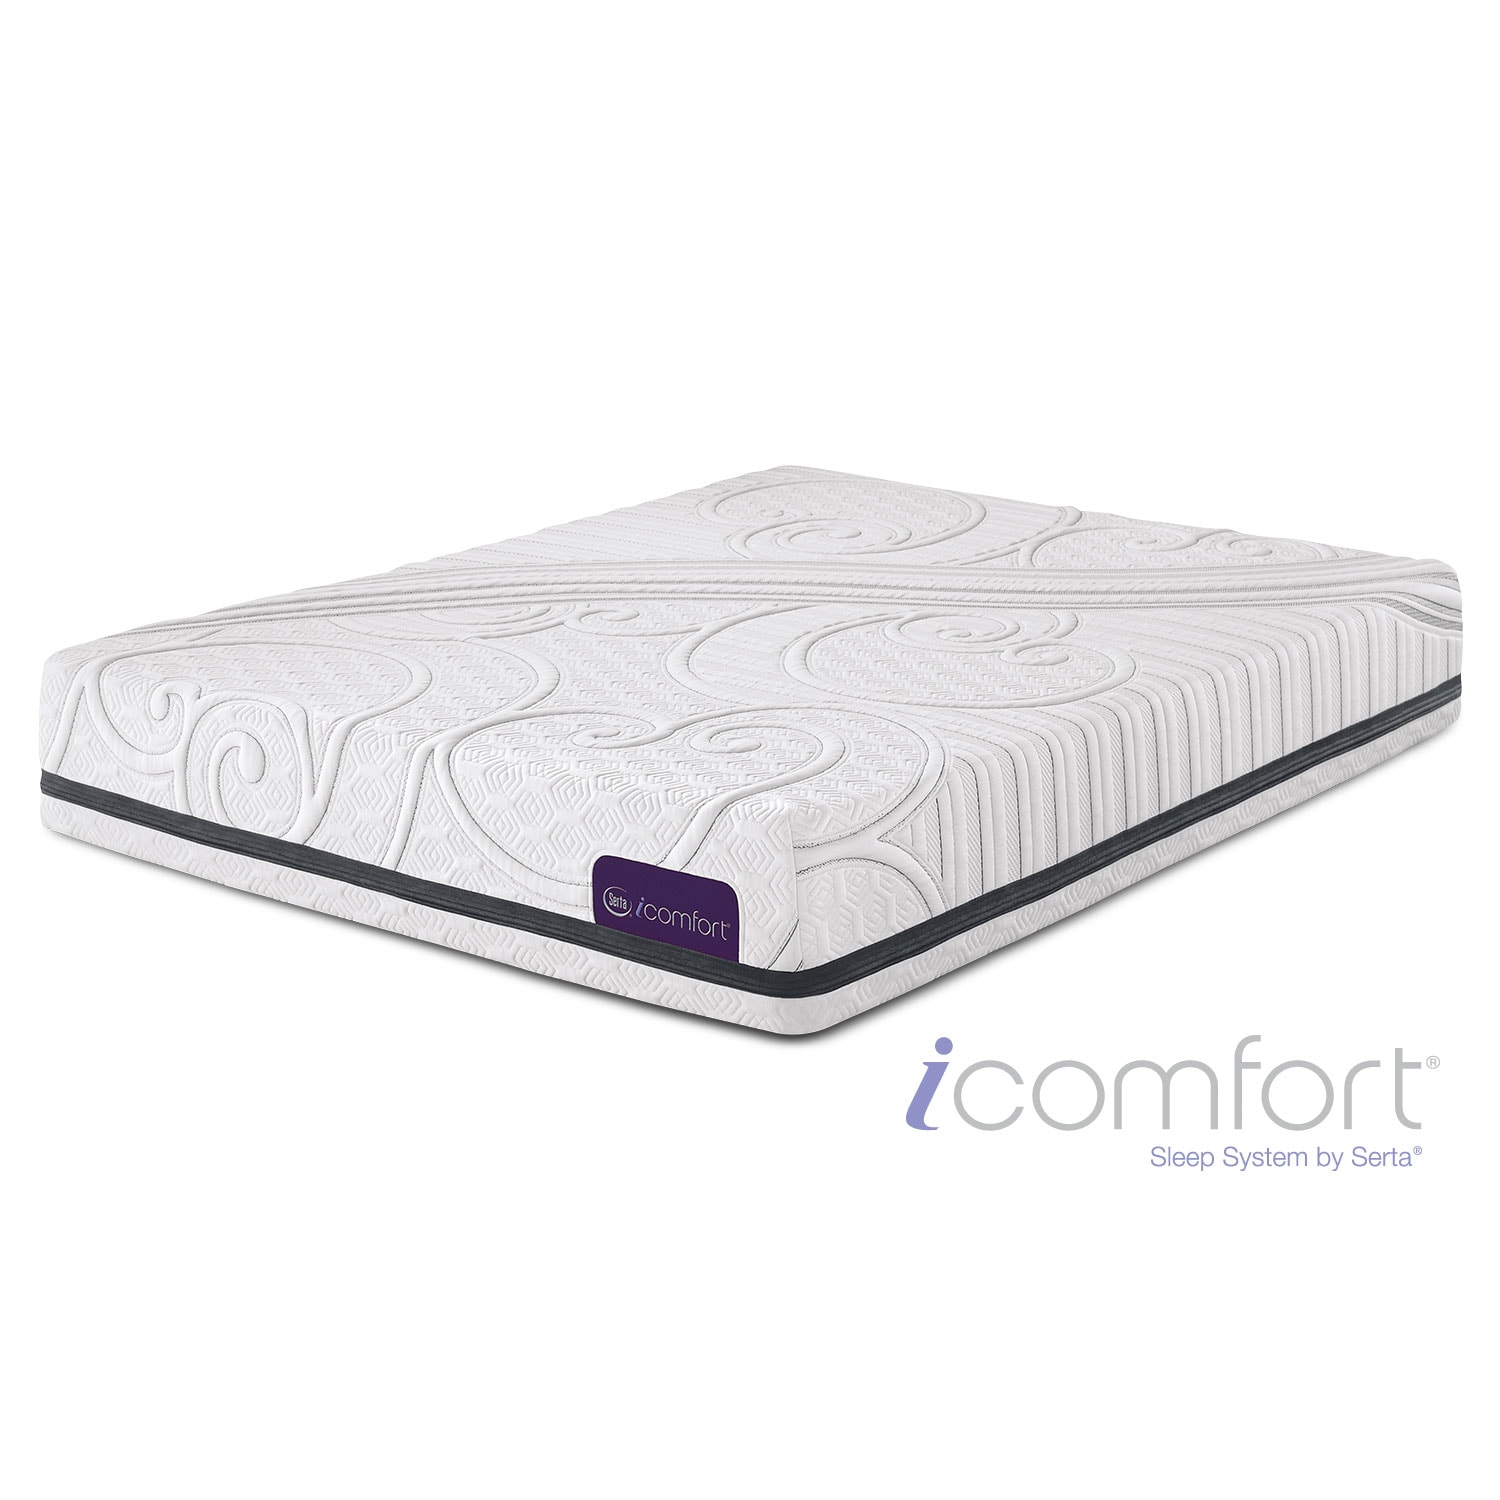 [Savant III Plush Full Mattress]